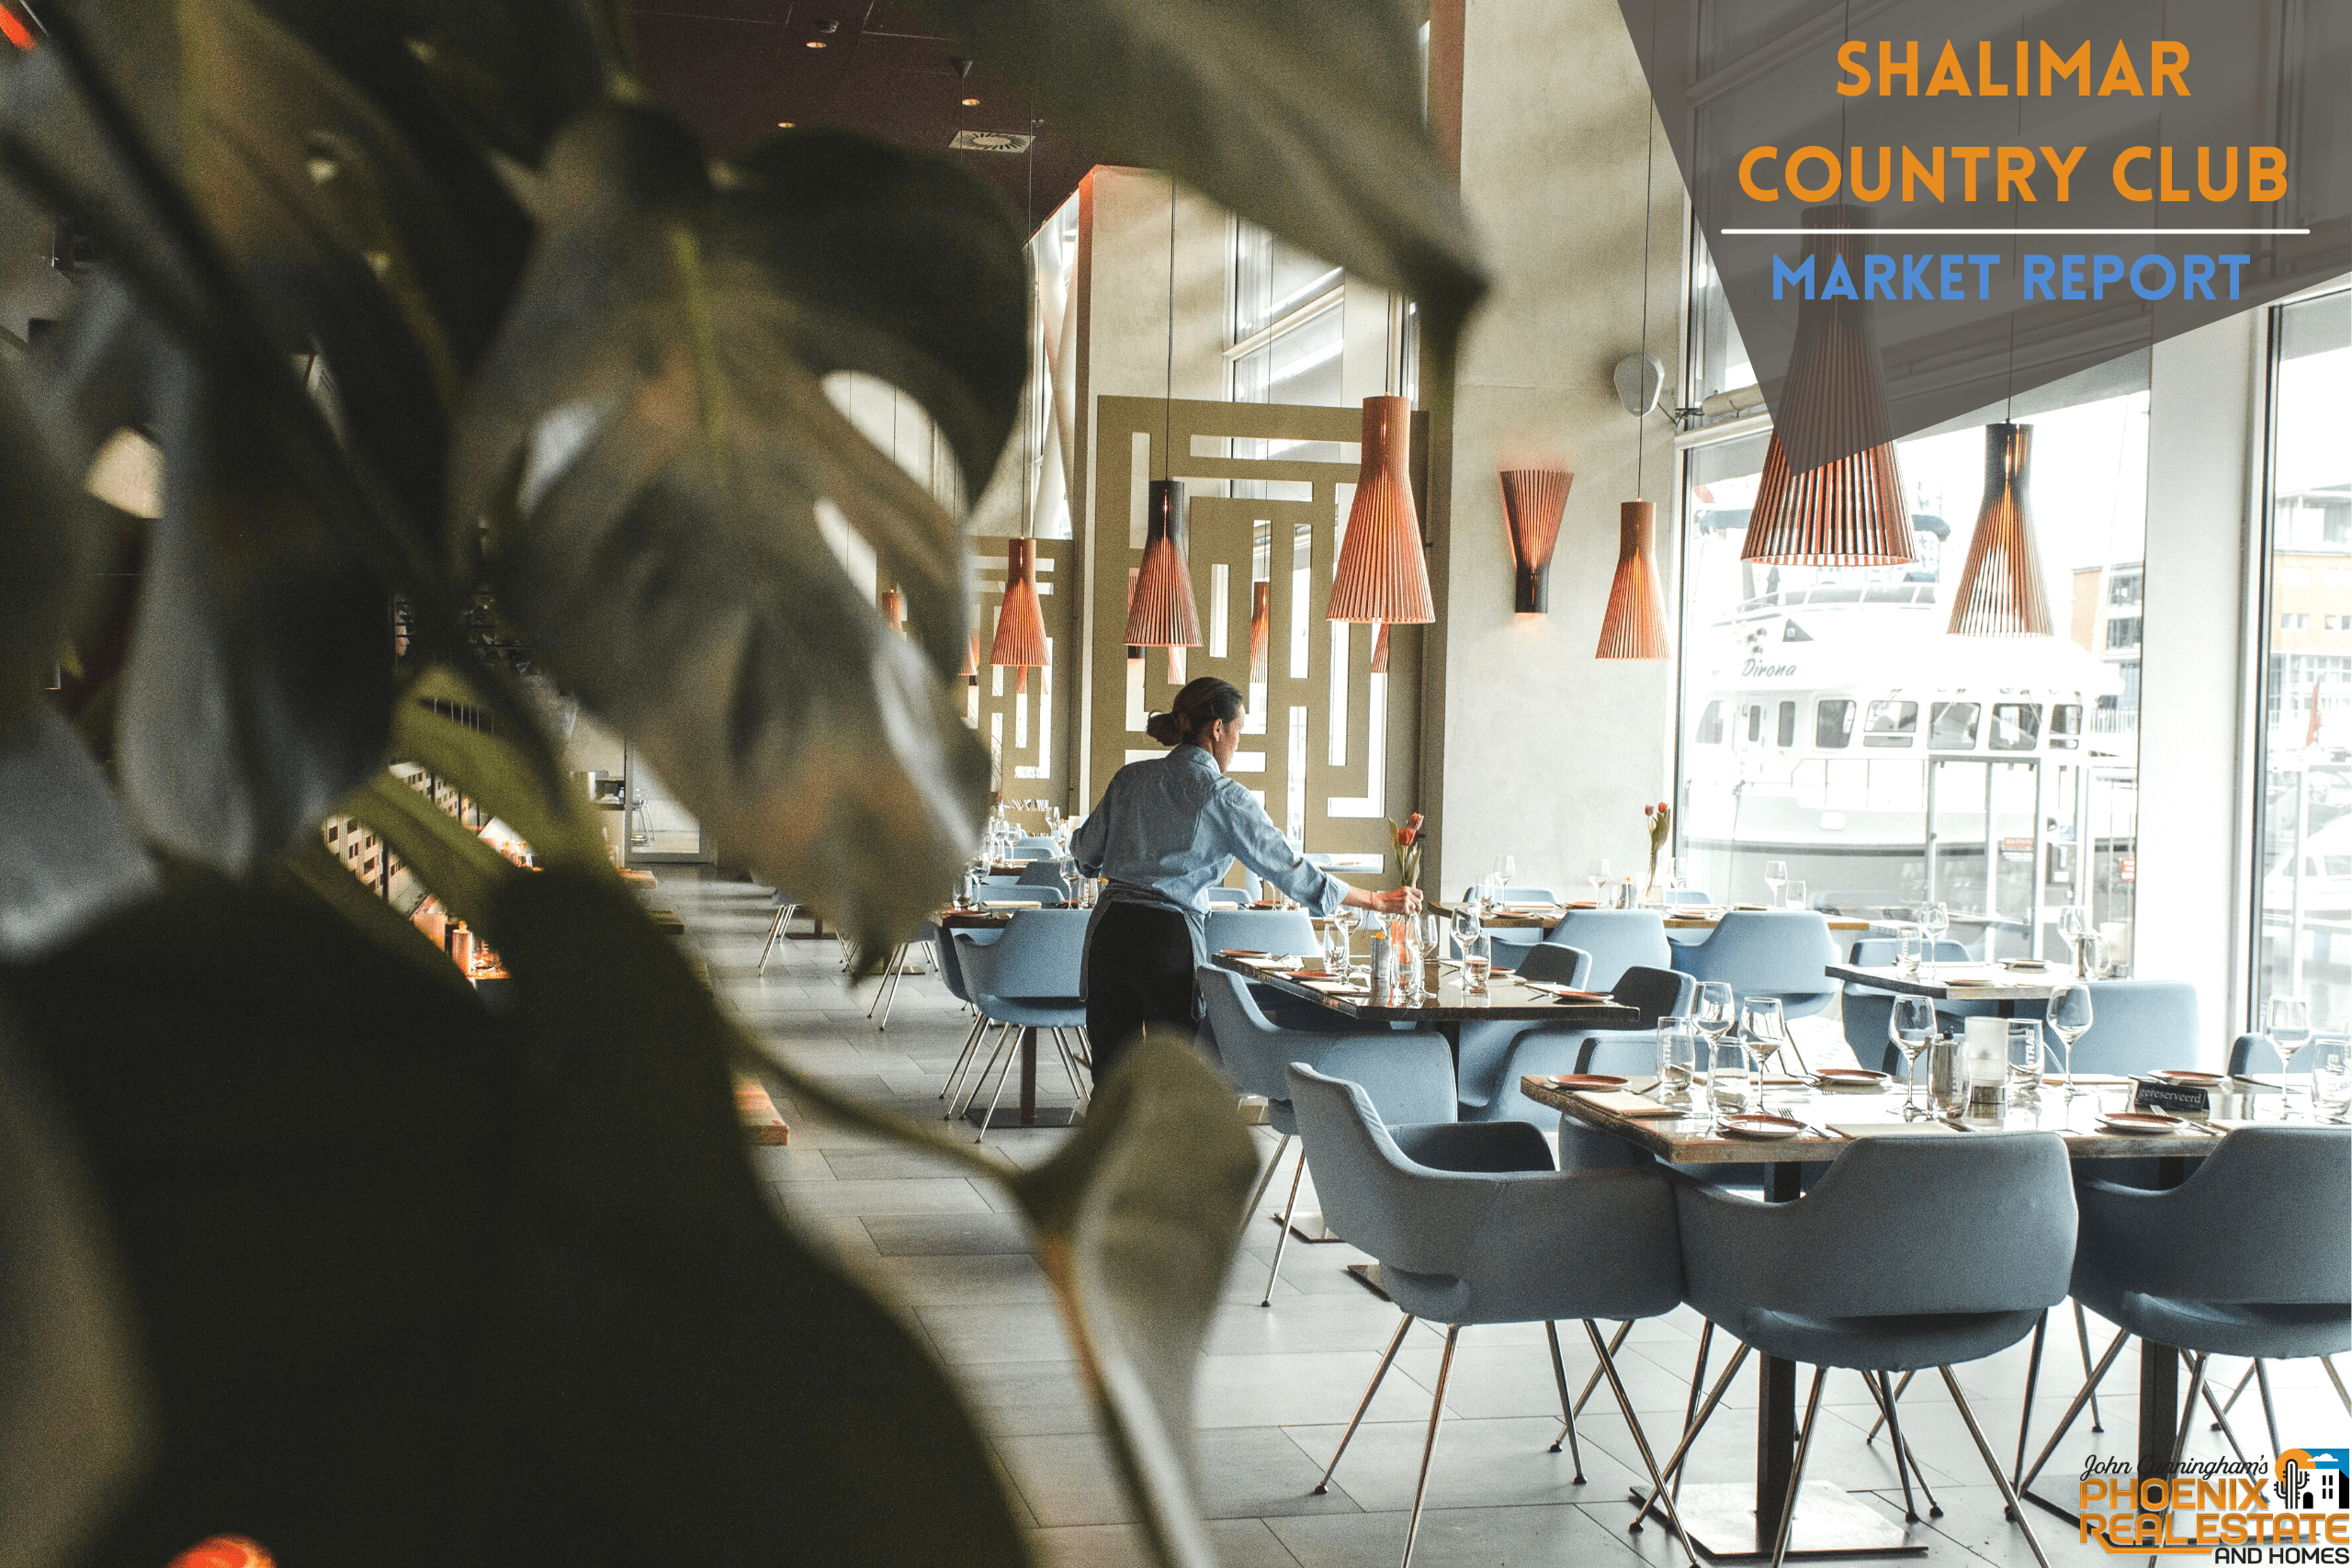 Shalimar Country Club Market Report